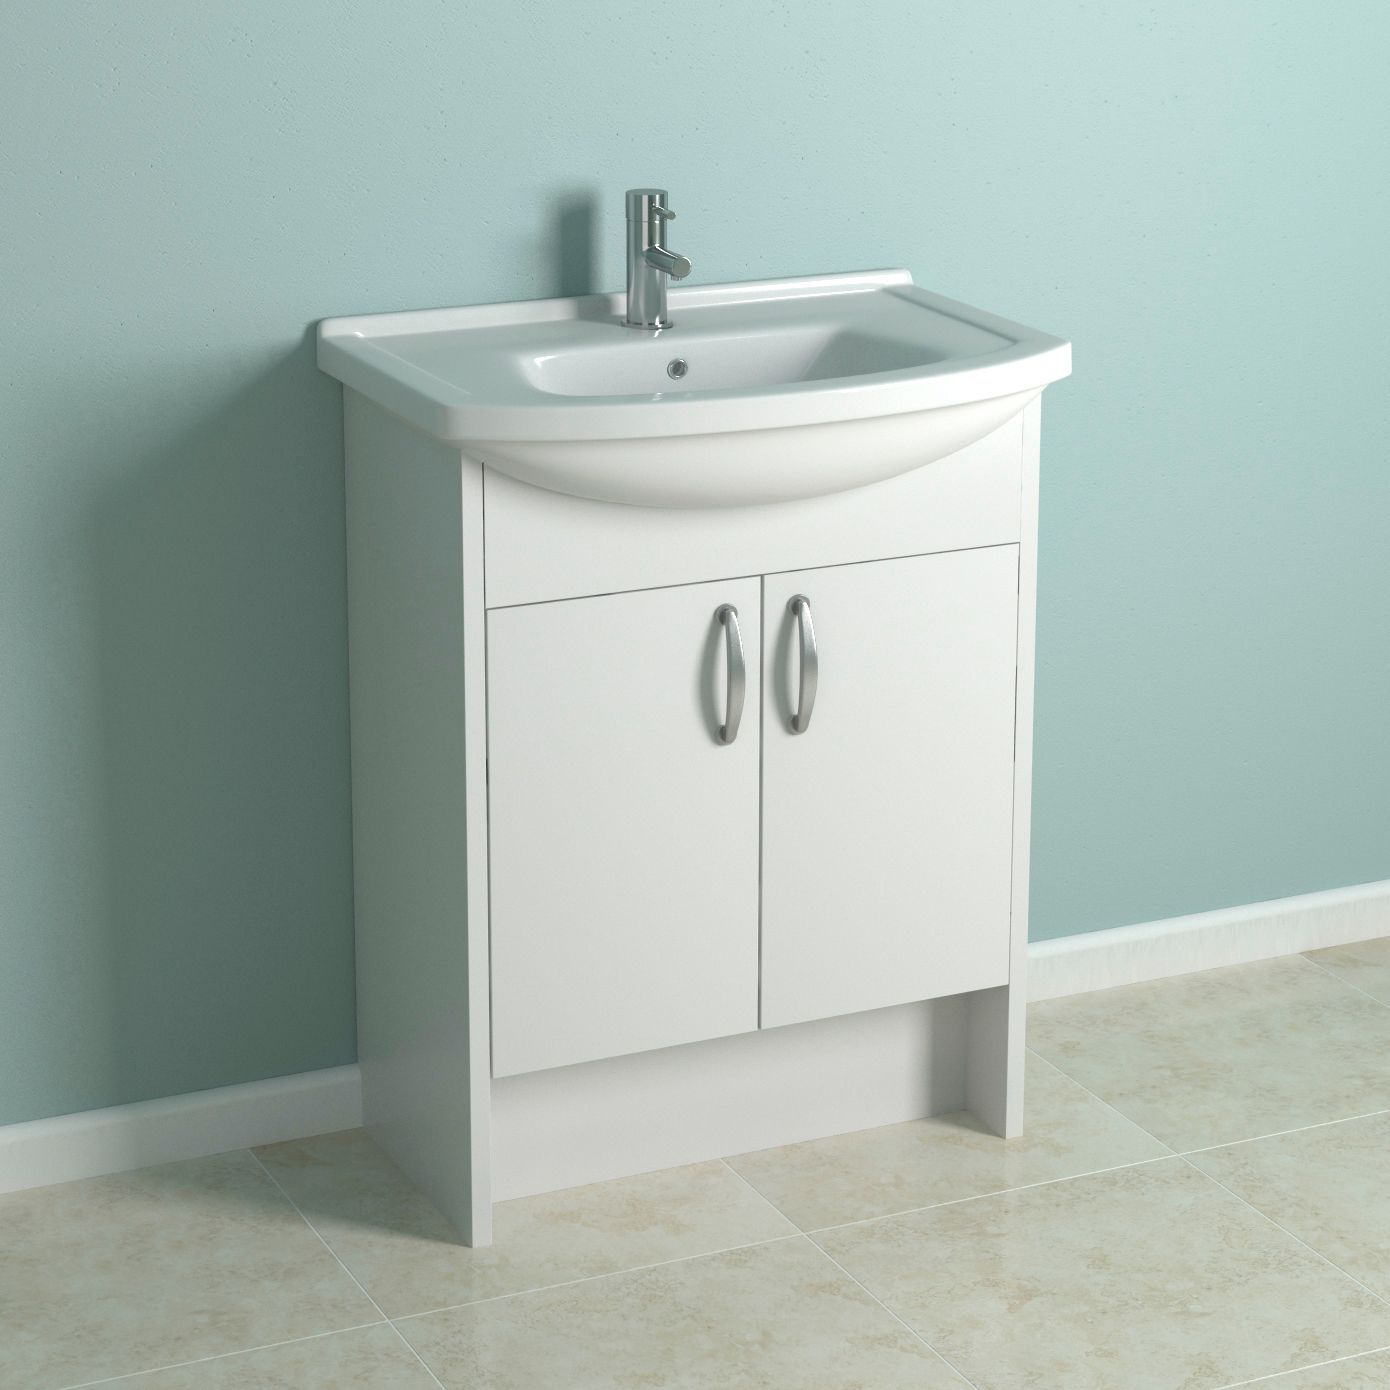 Cooke & Lewis Enza White Vanity Unit With Clad-On End